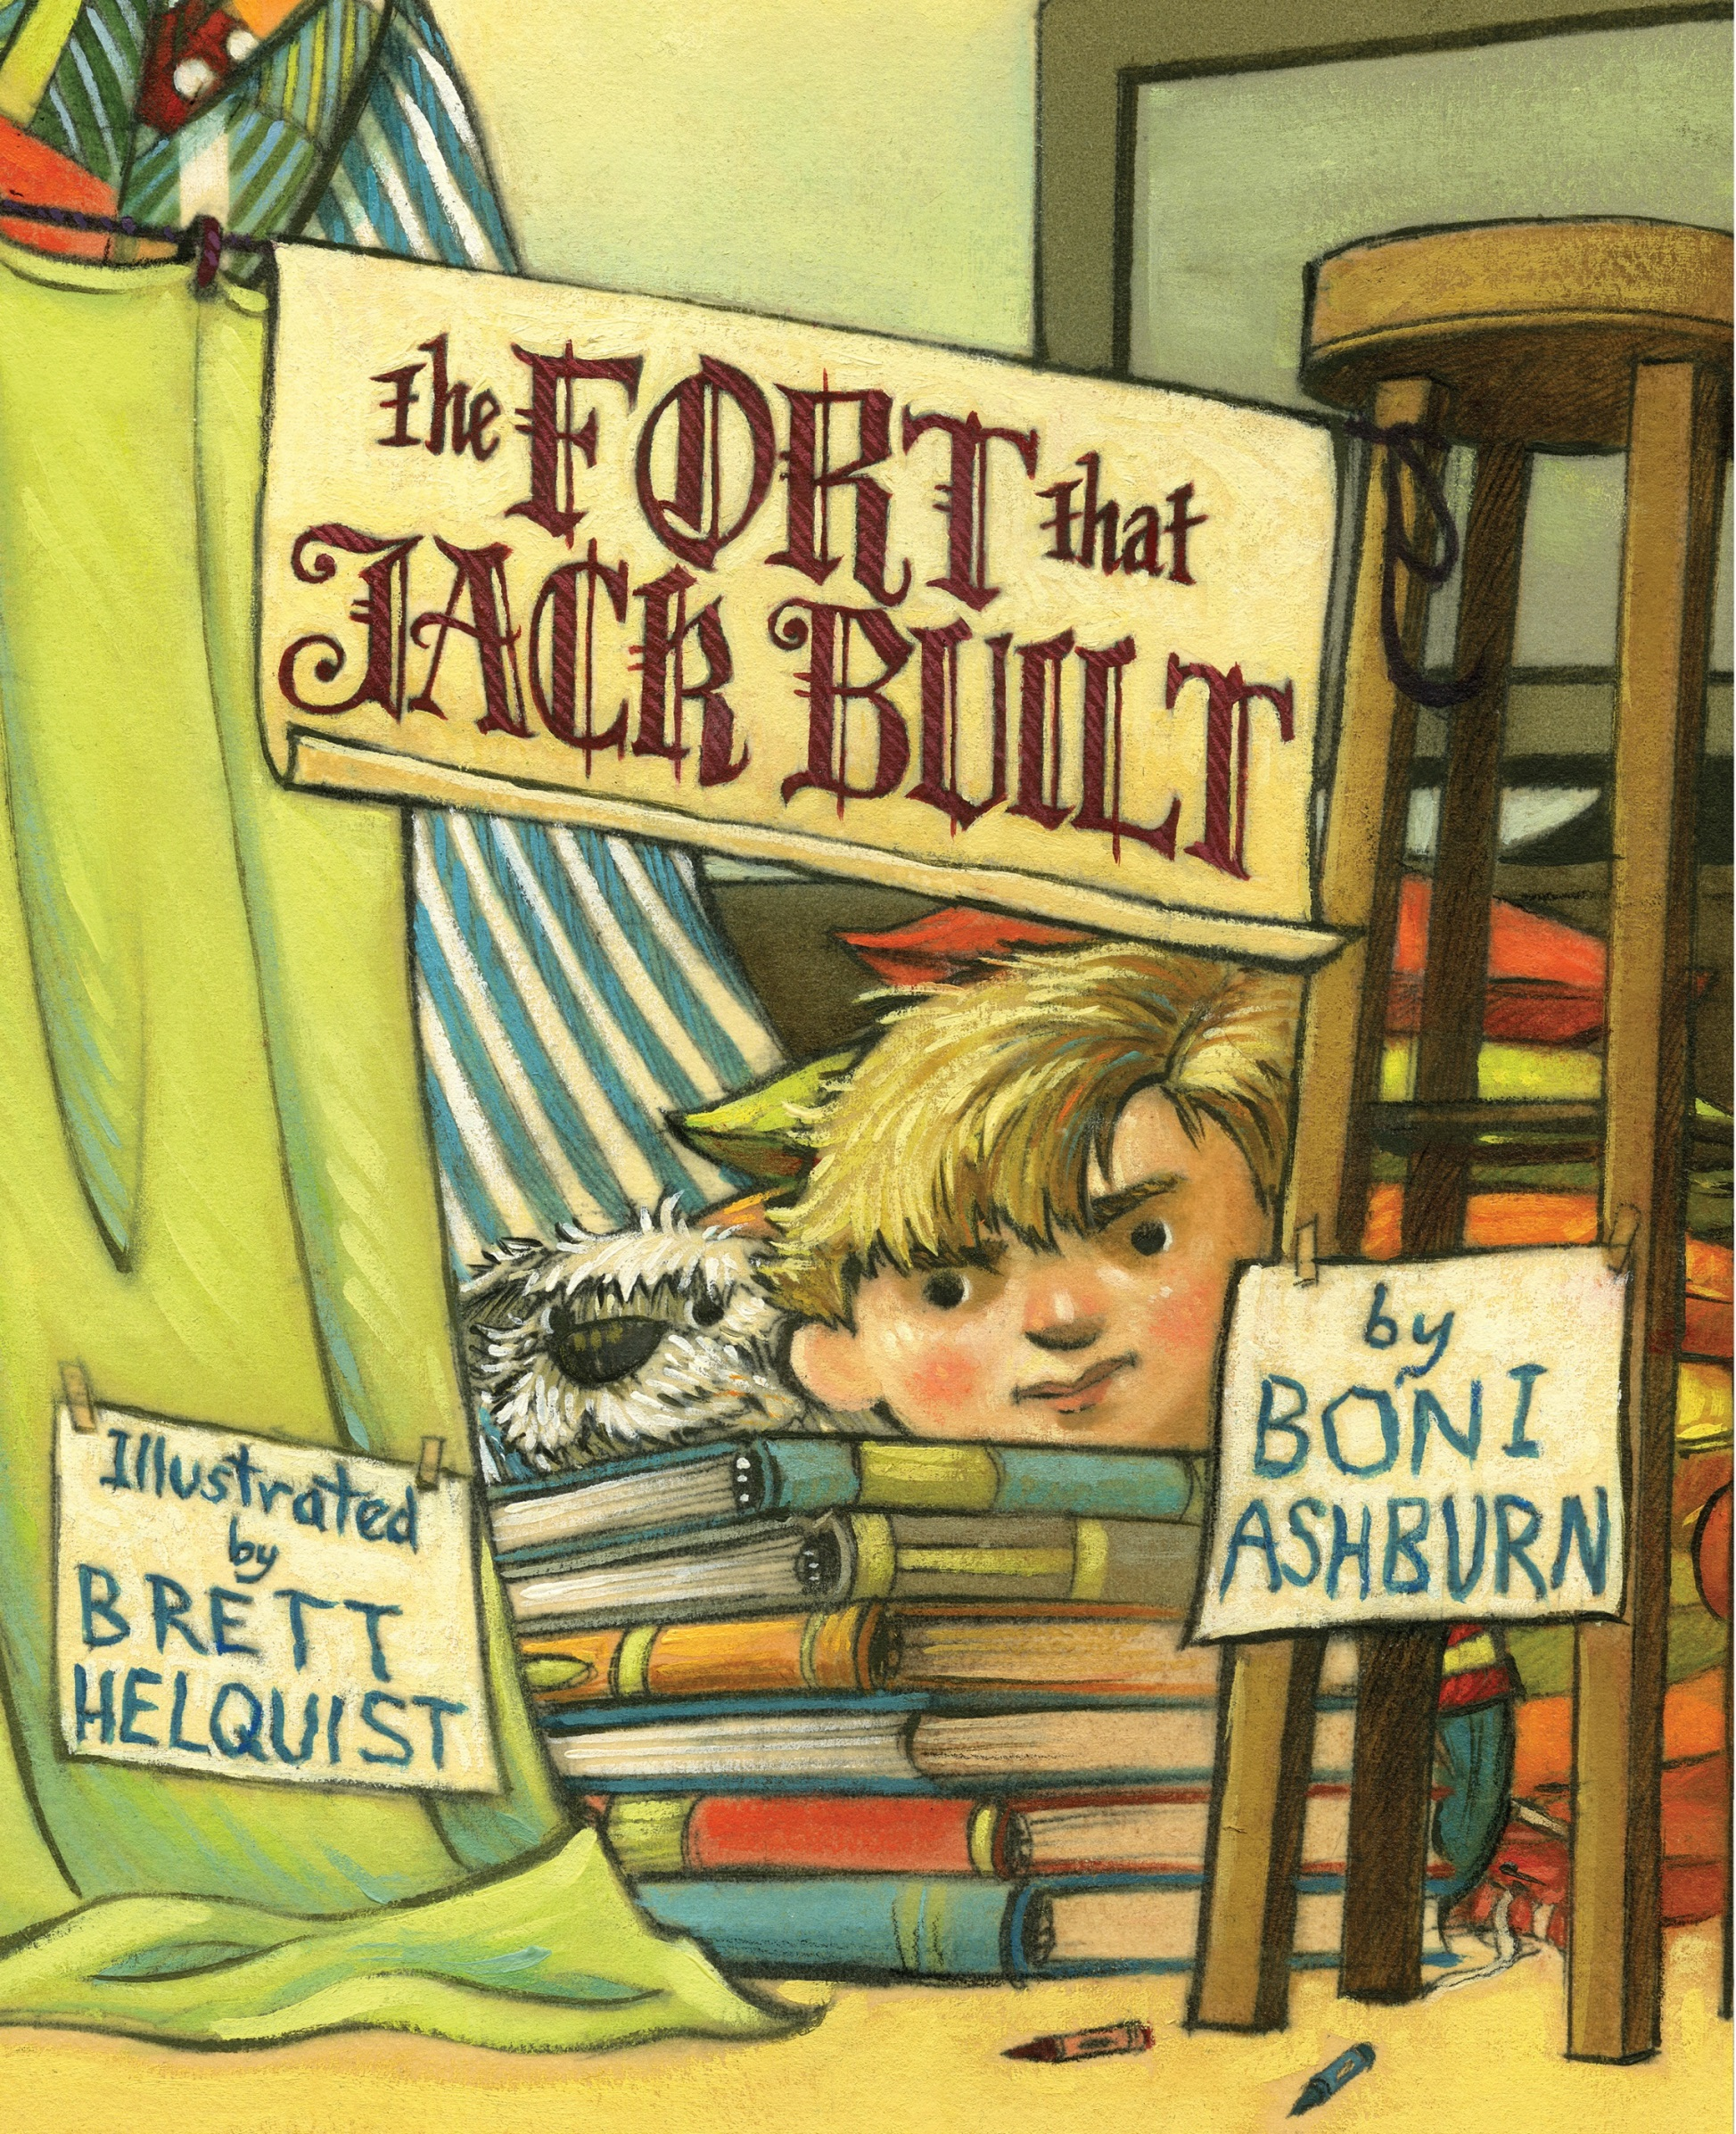 Story Time with Brett Helquist (illustrator of The Fort That Jack Built)